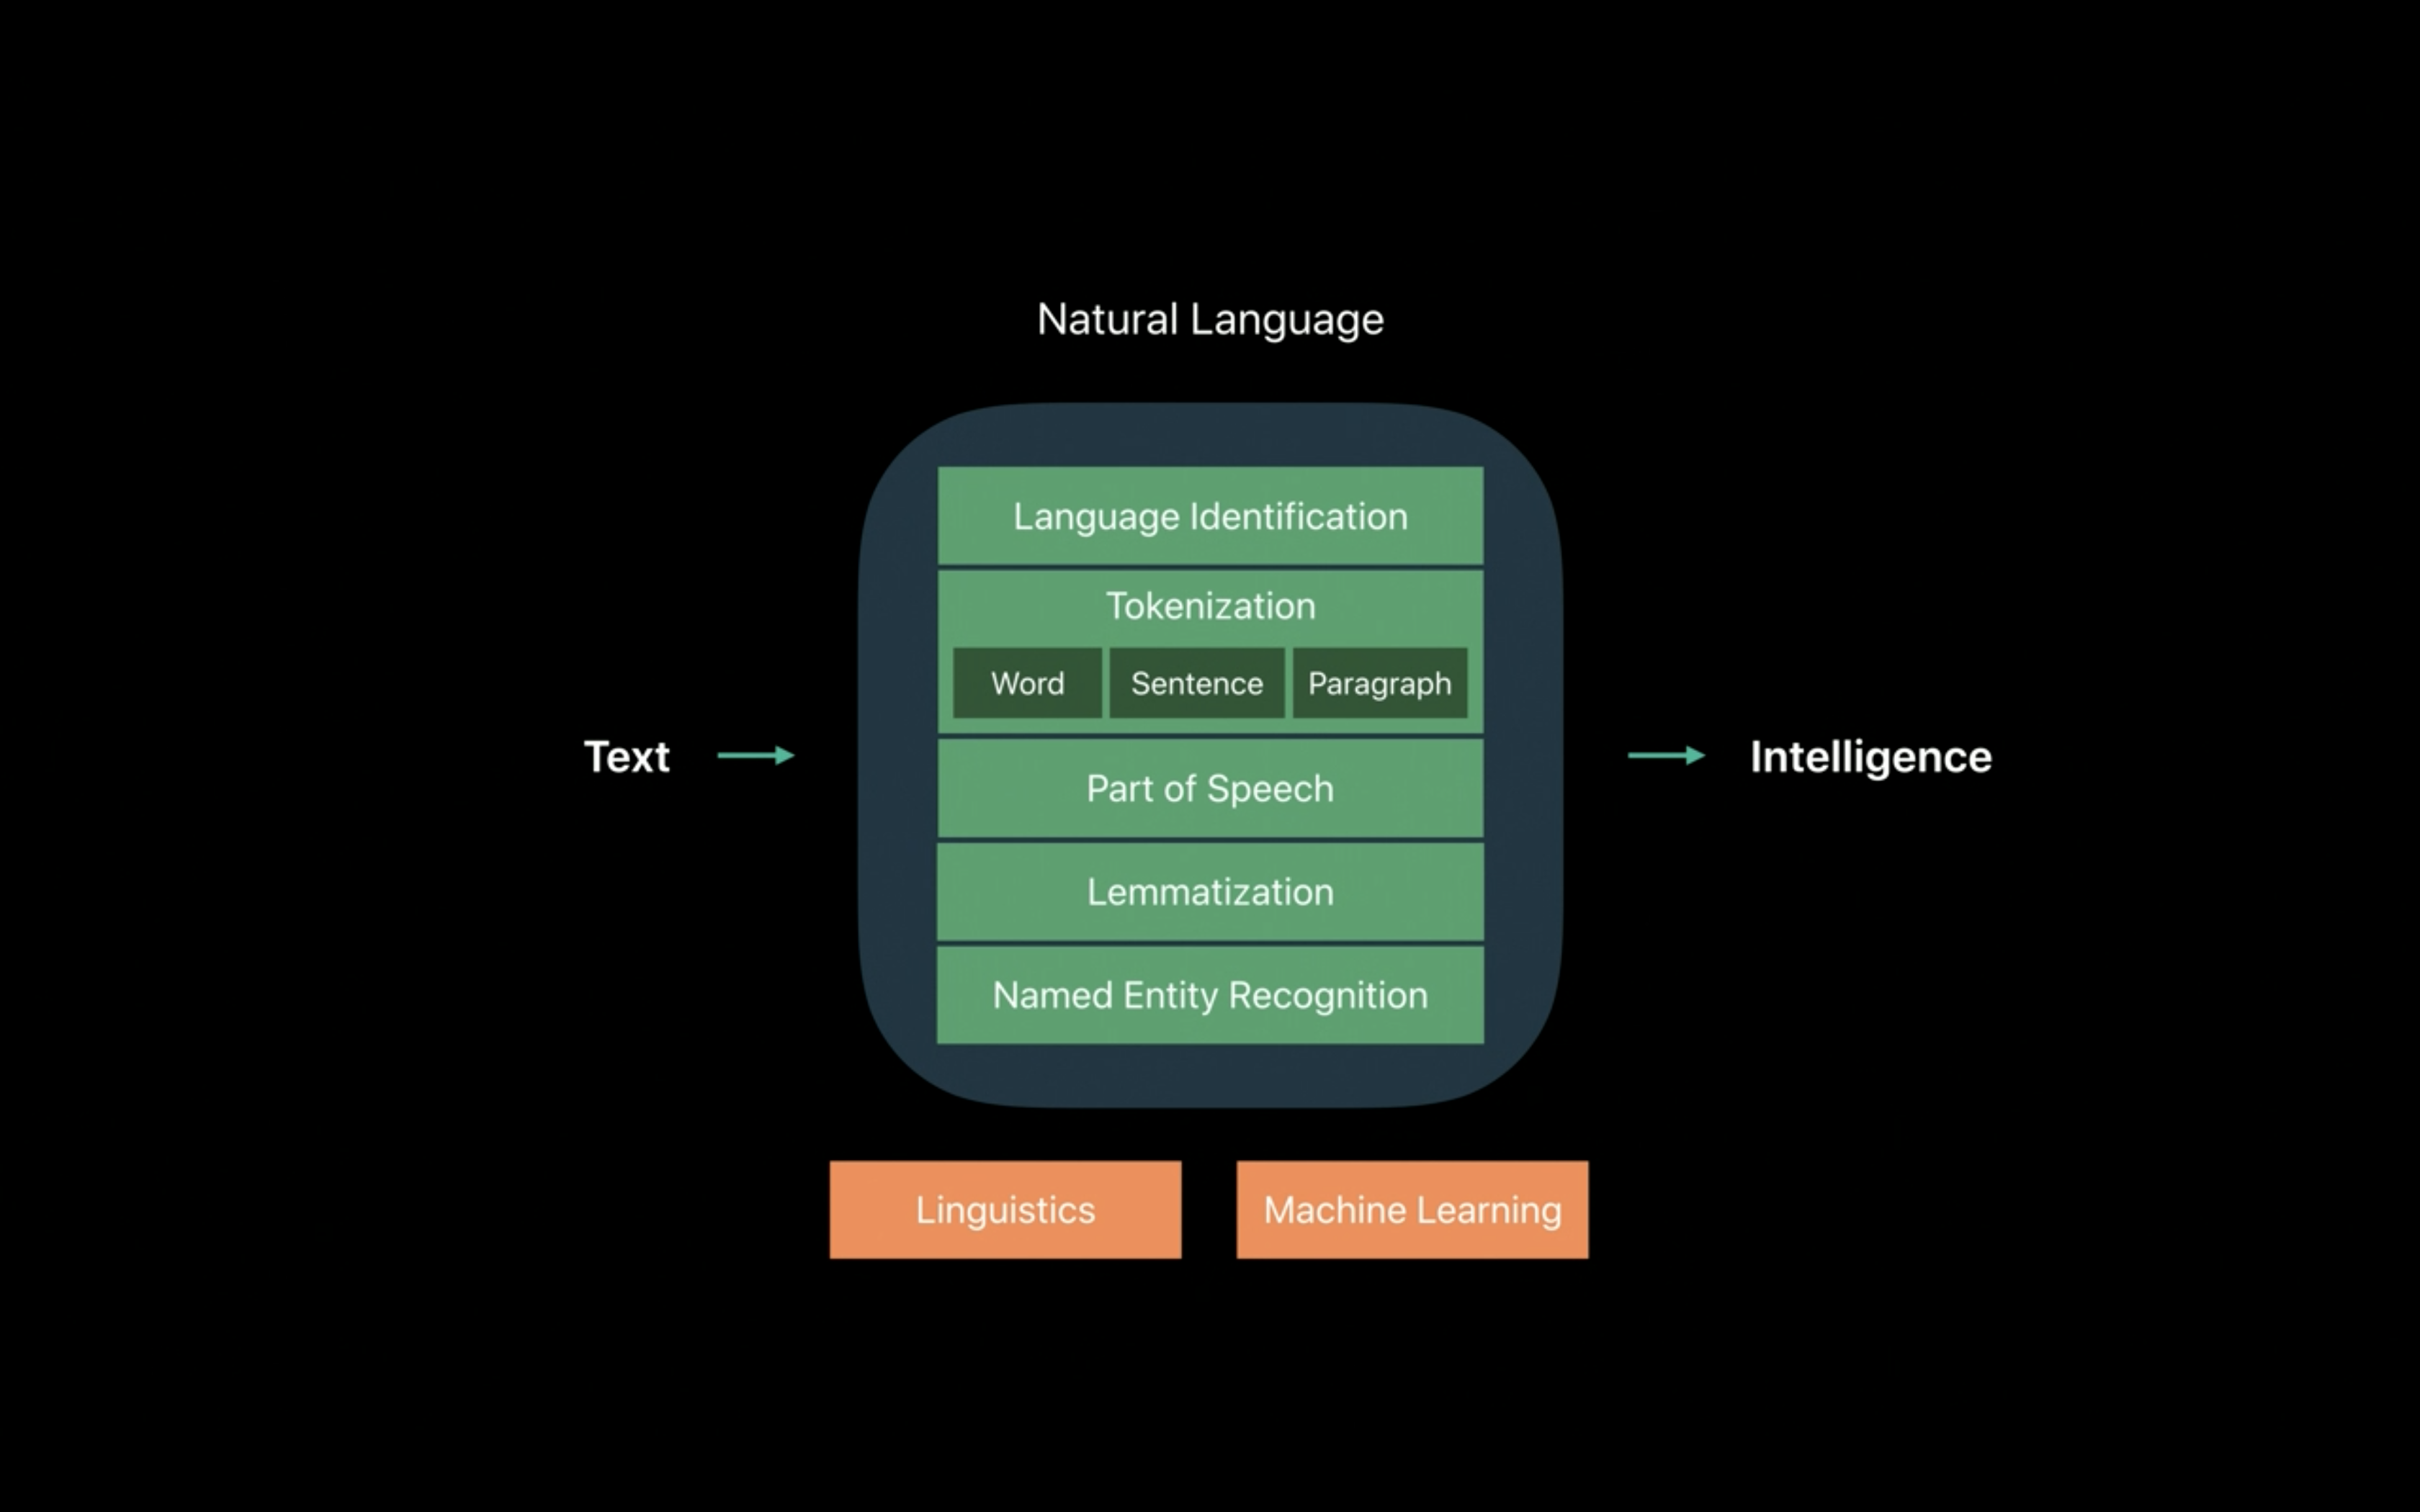 Schematic of the natural language framework